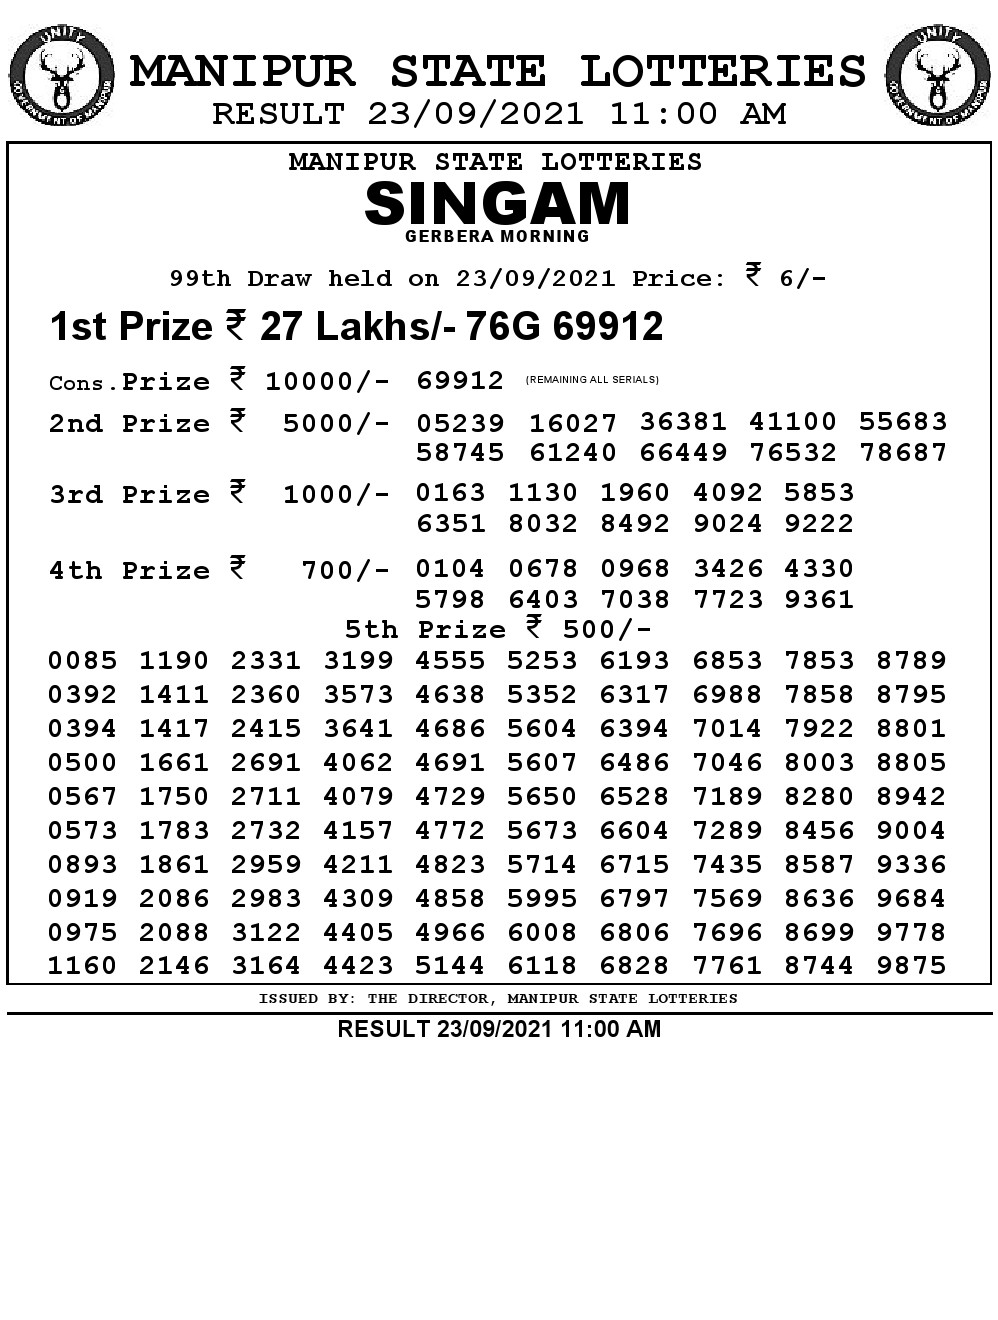 Manipur Lottery Result today 23/09/2021 singam 11:00 am pdf download